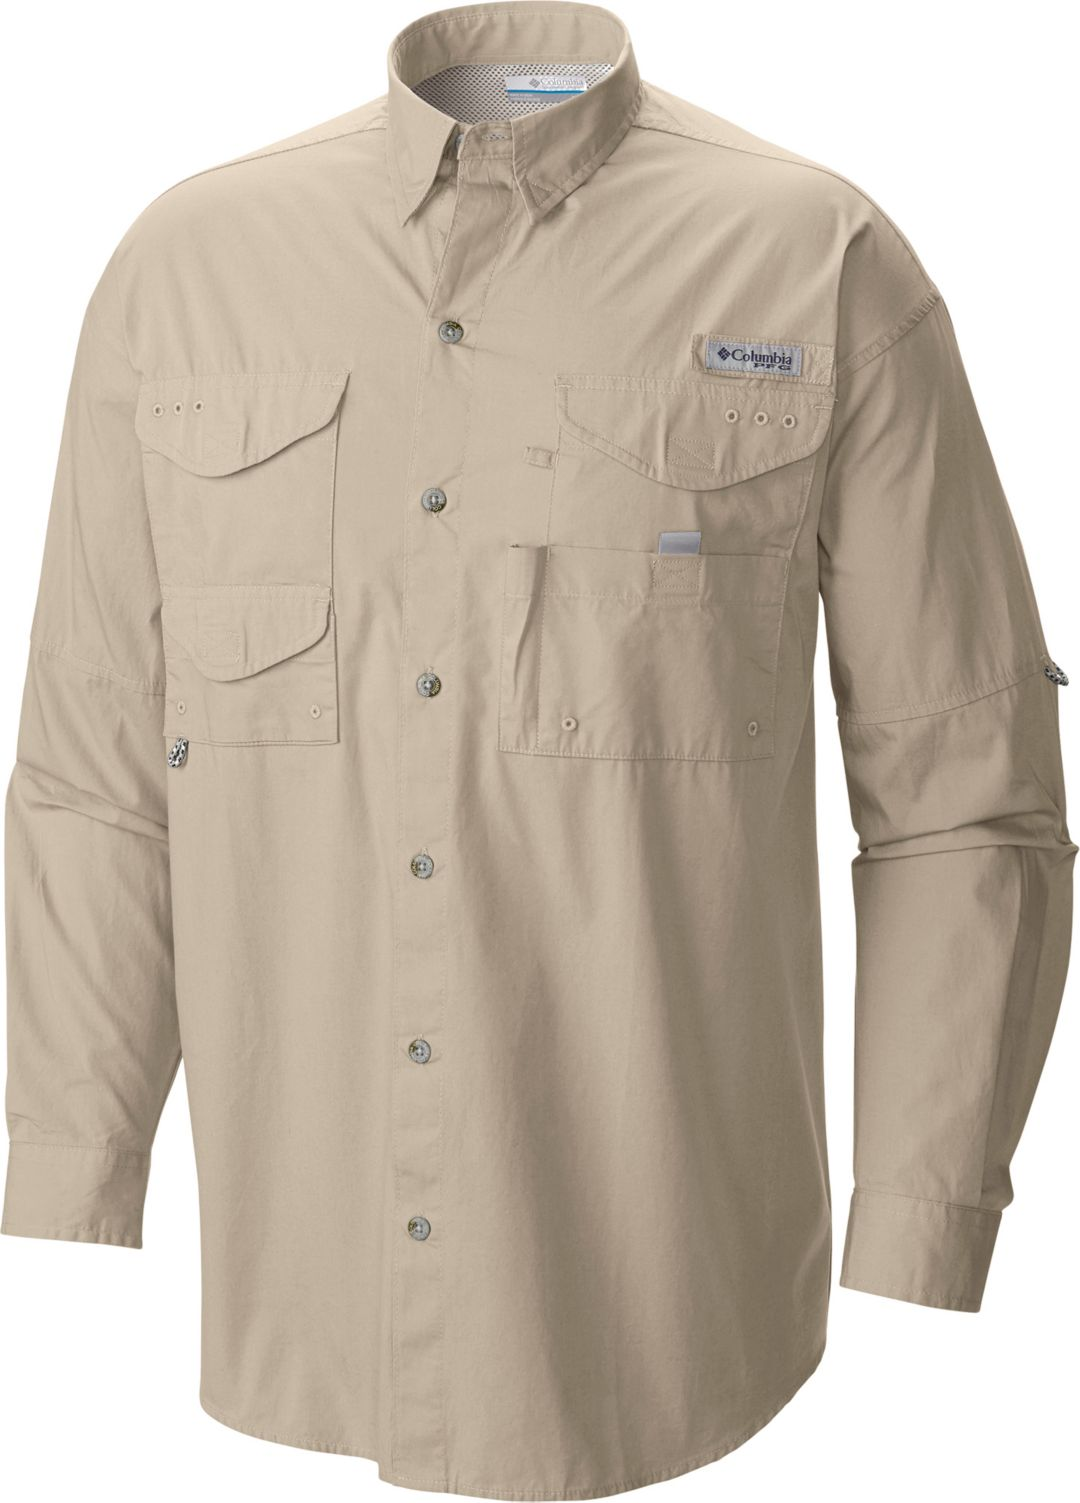 b96f2429465921 Columbia Men's PFG Super Bonehead Classic Long Sleeve Fishing Shirt ...